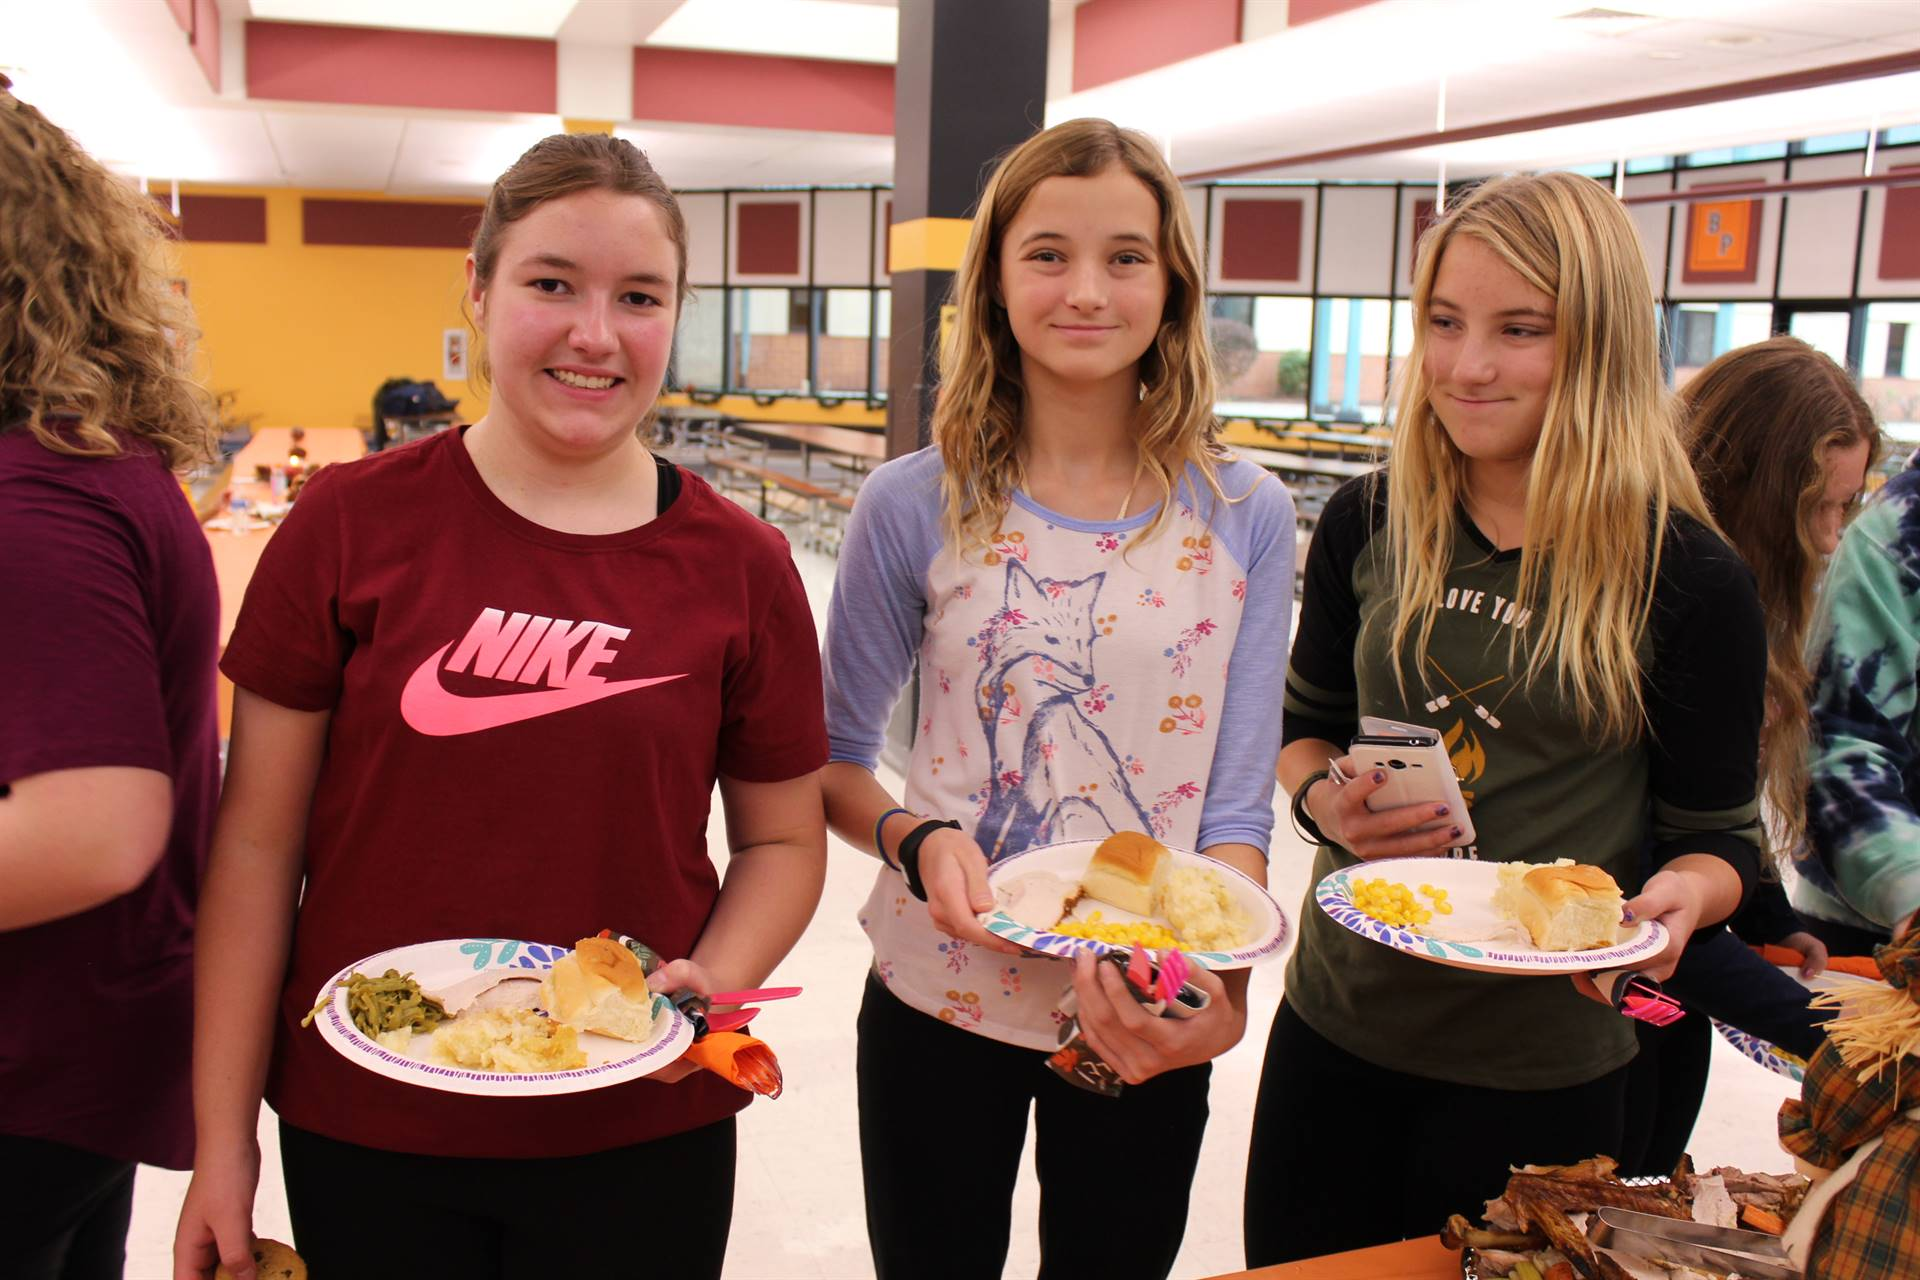 Students with their food